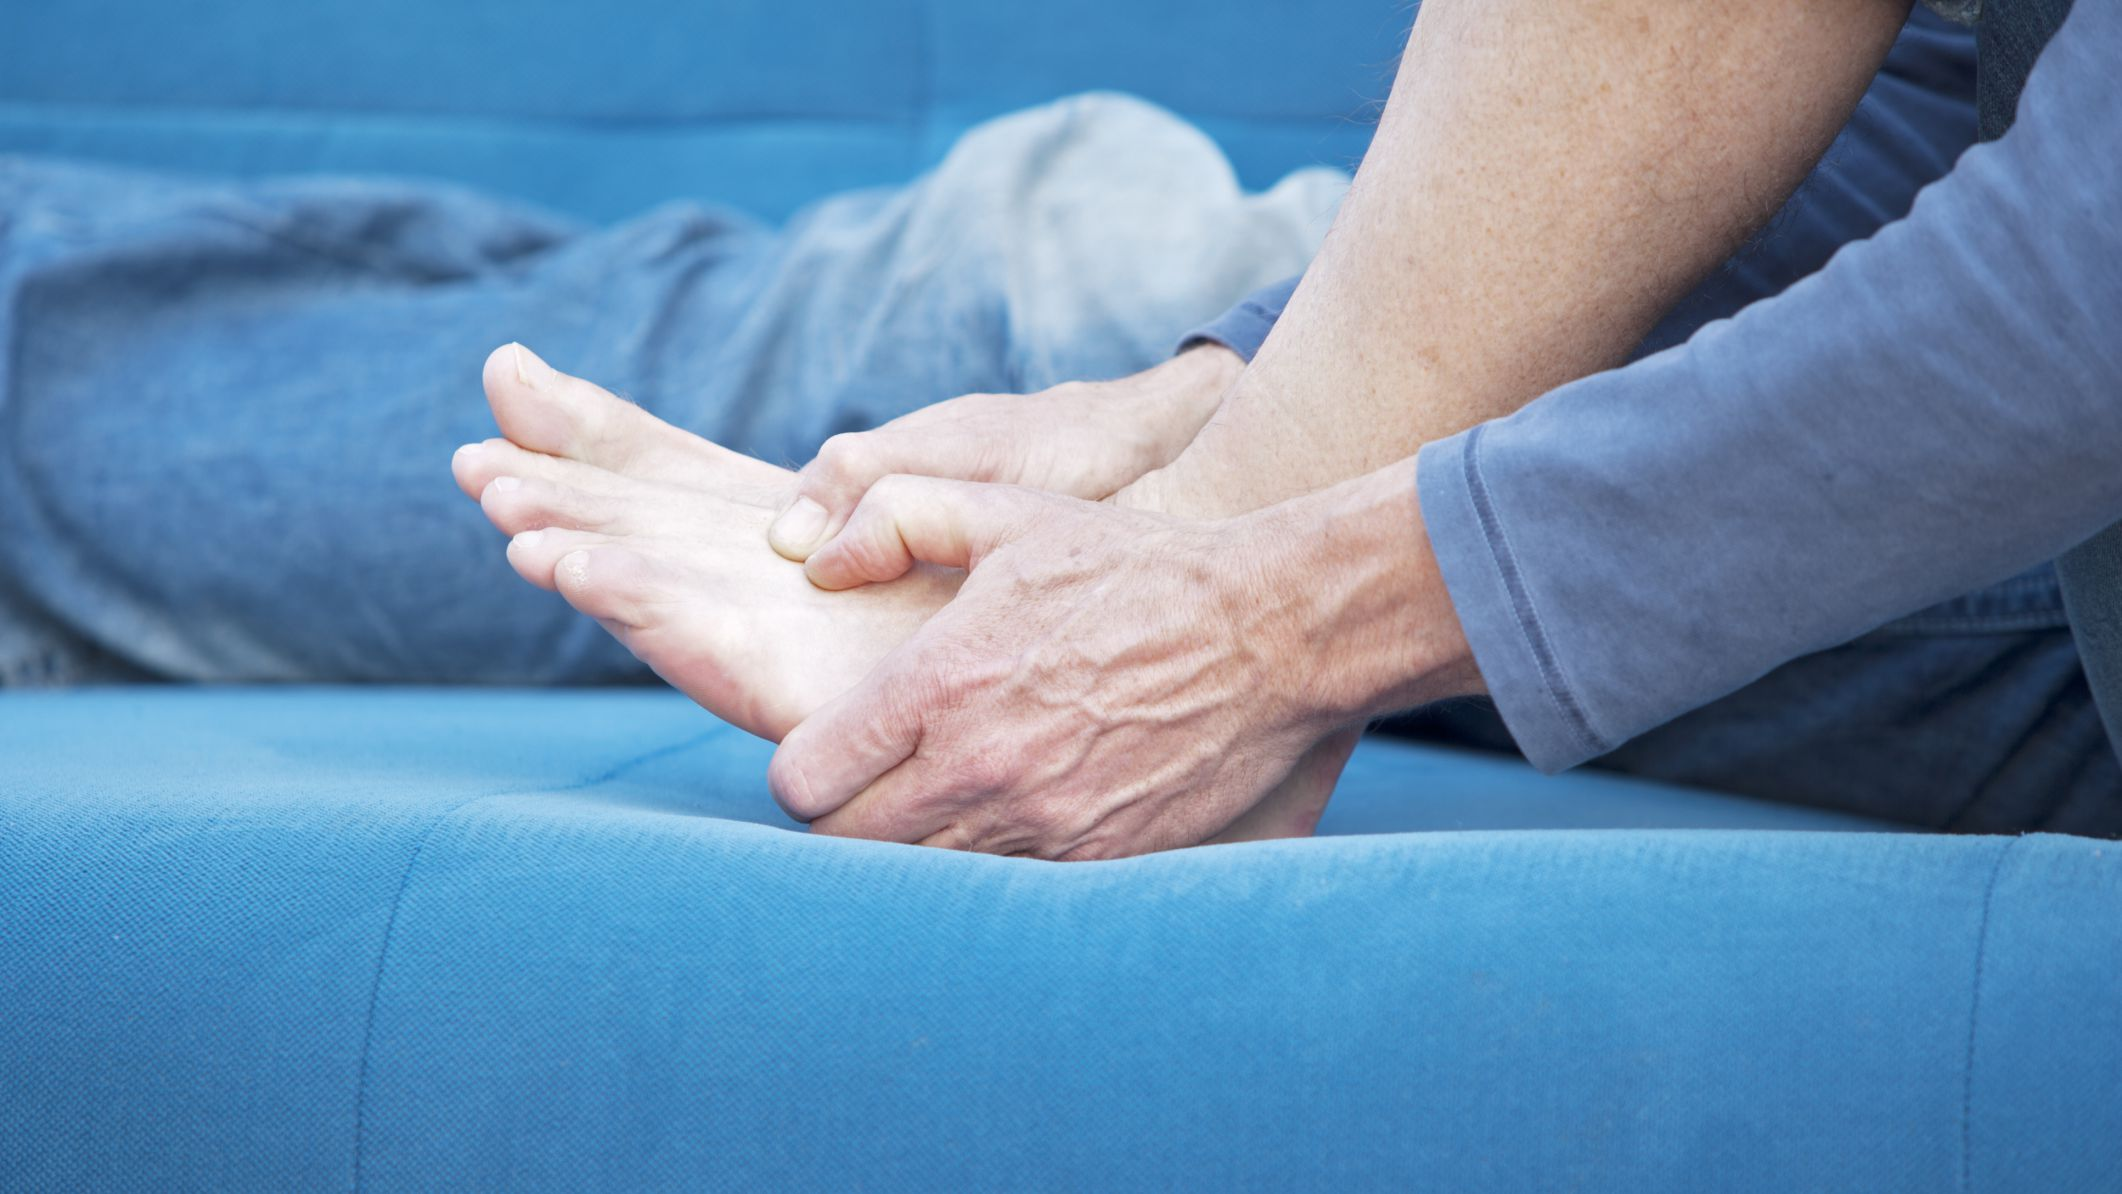 Foot Pain Symptoms and Causes in Fibromyalgia